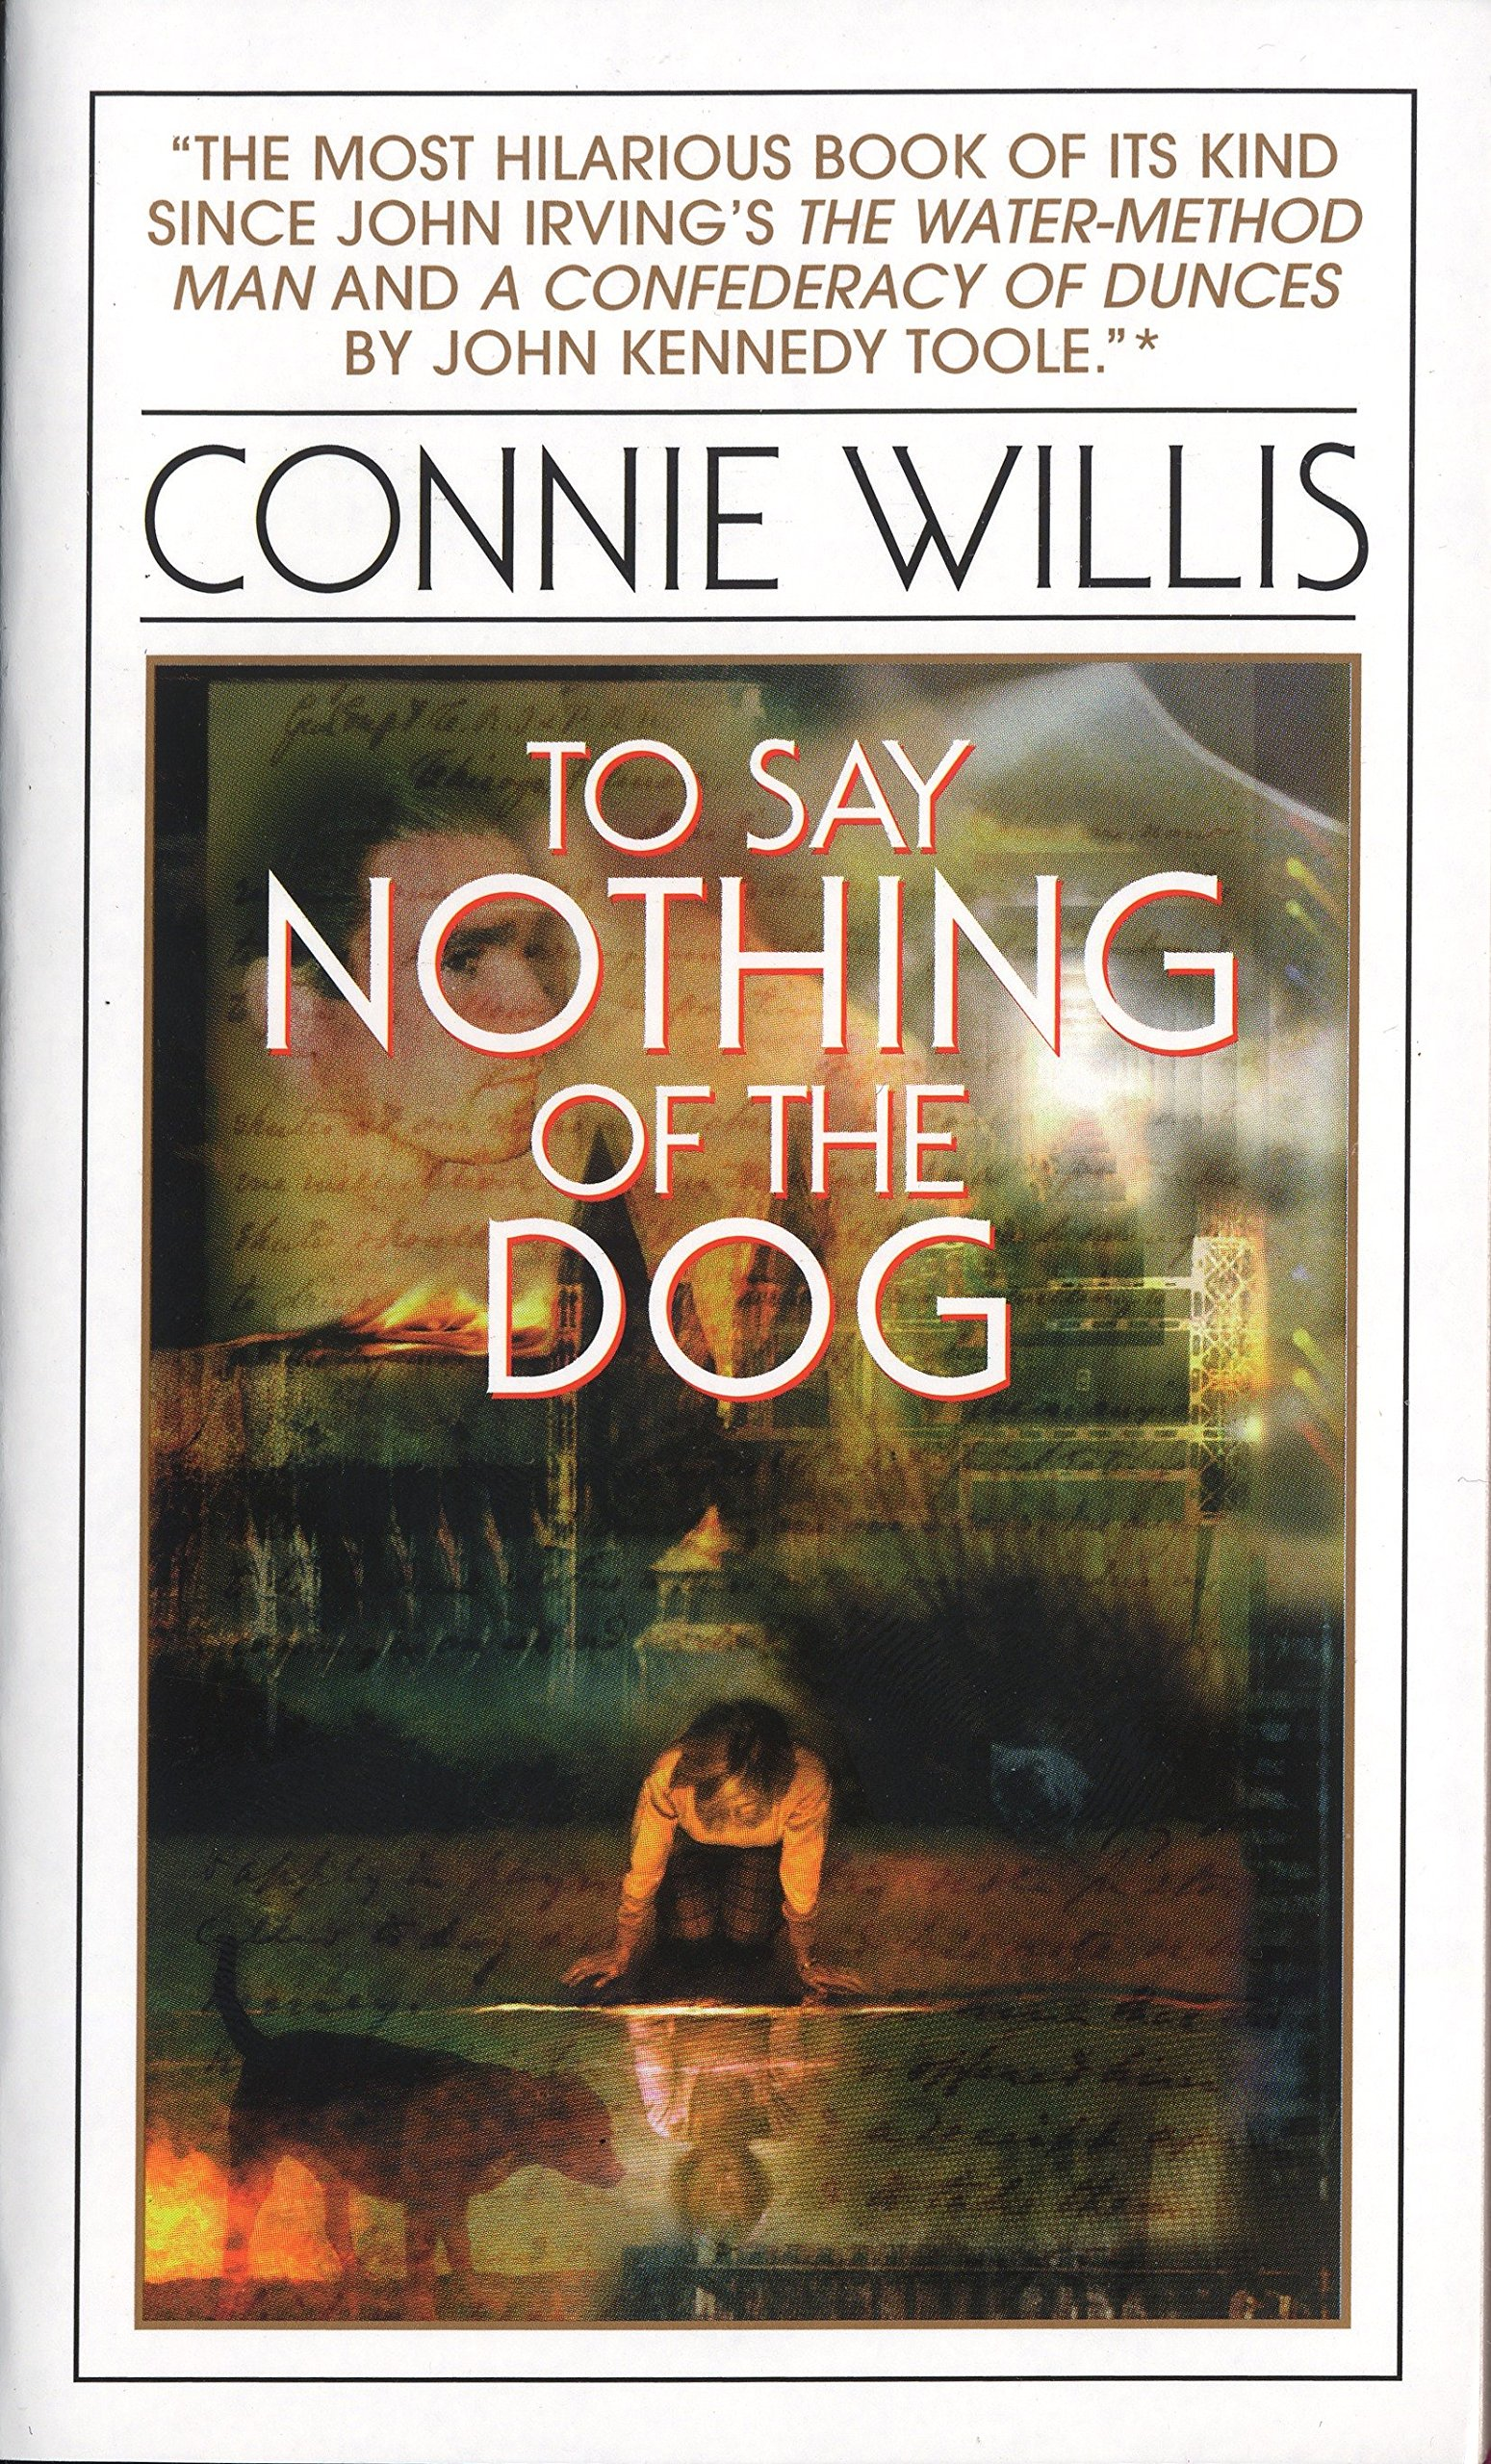 Amazon.com: To Say Nothing of the Dog (9780553575385): Willis ...